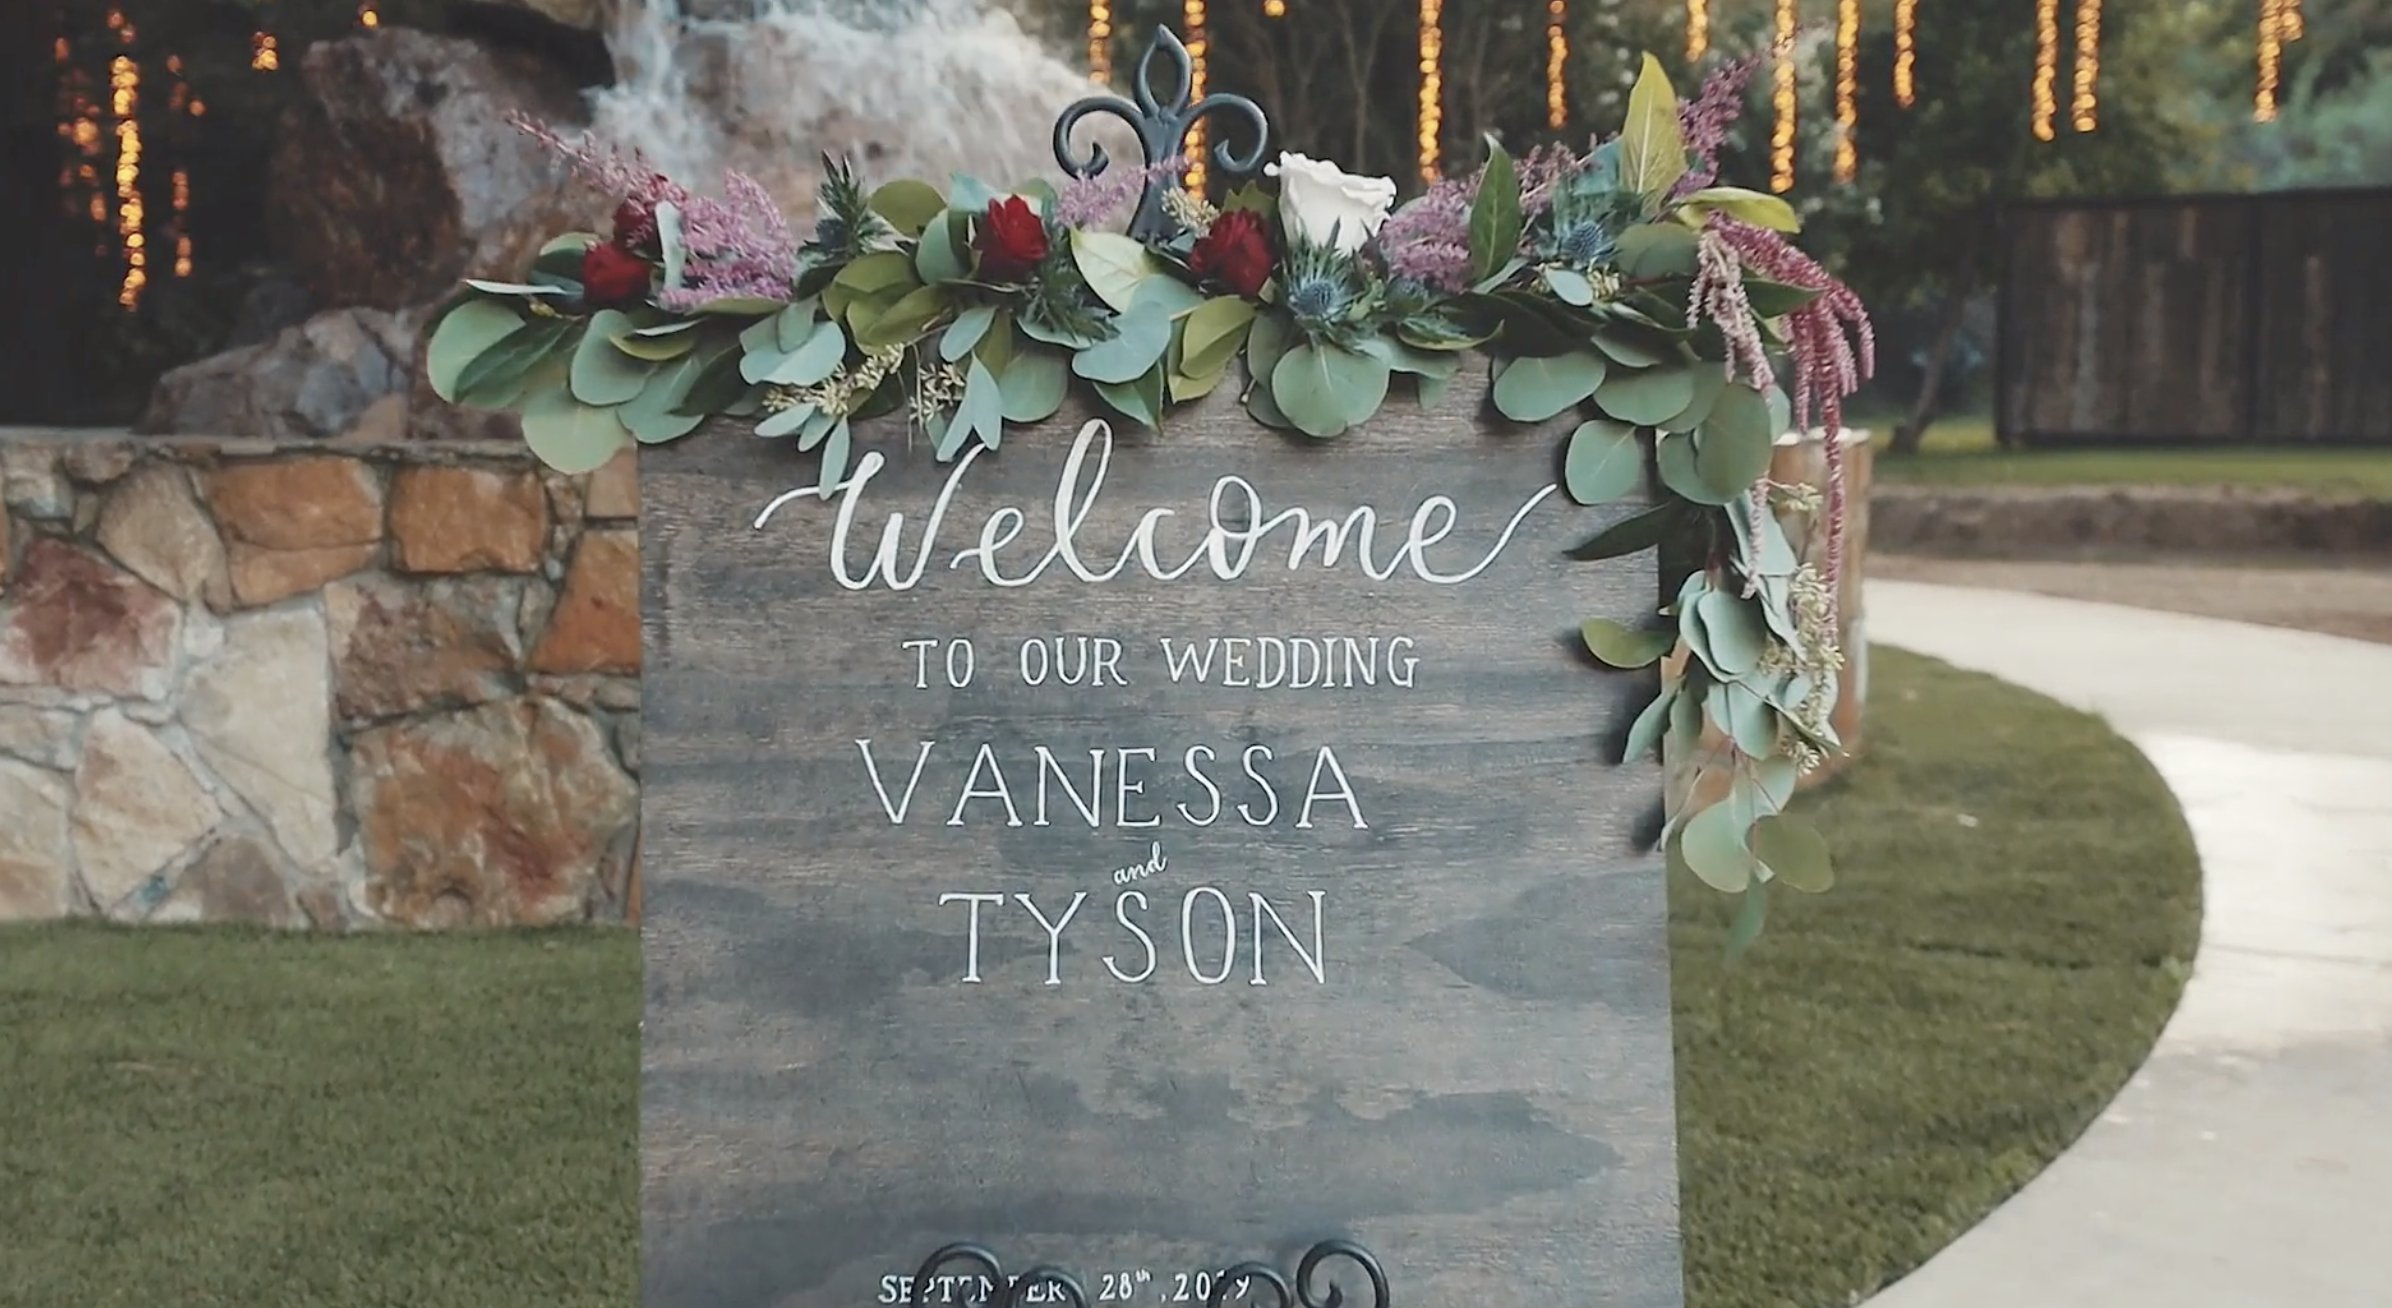 Wedding sneak peek | Vanessa + Tyson